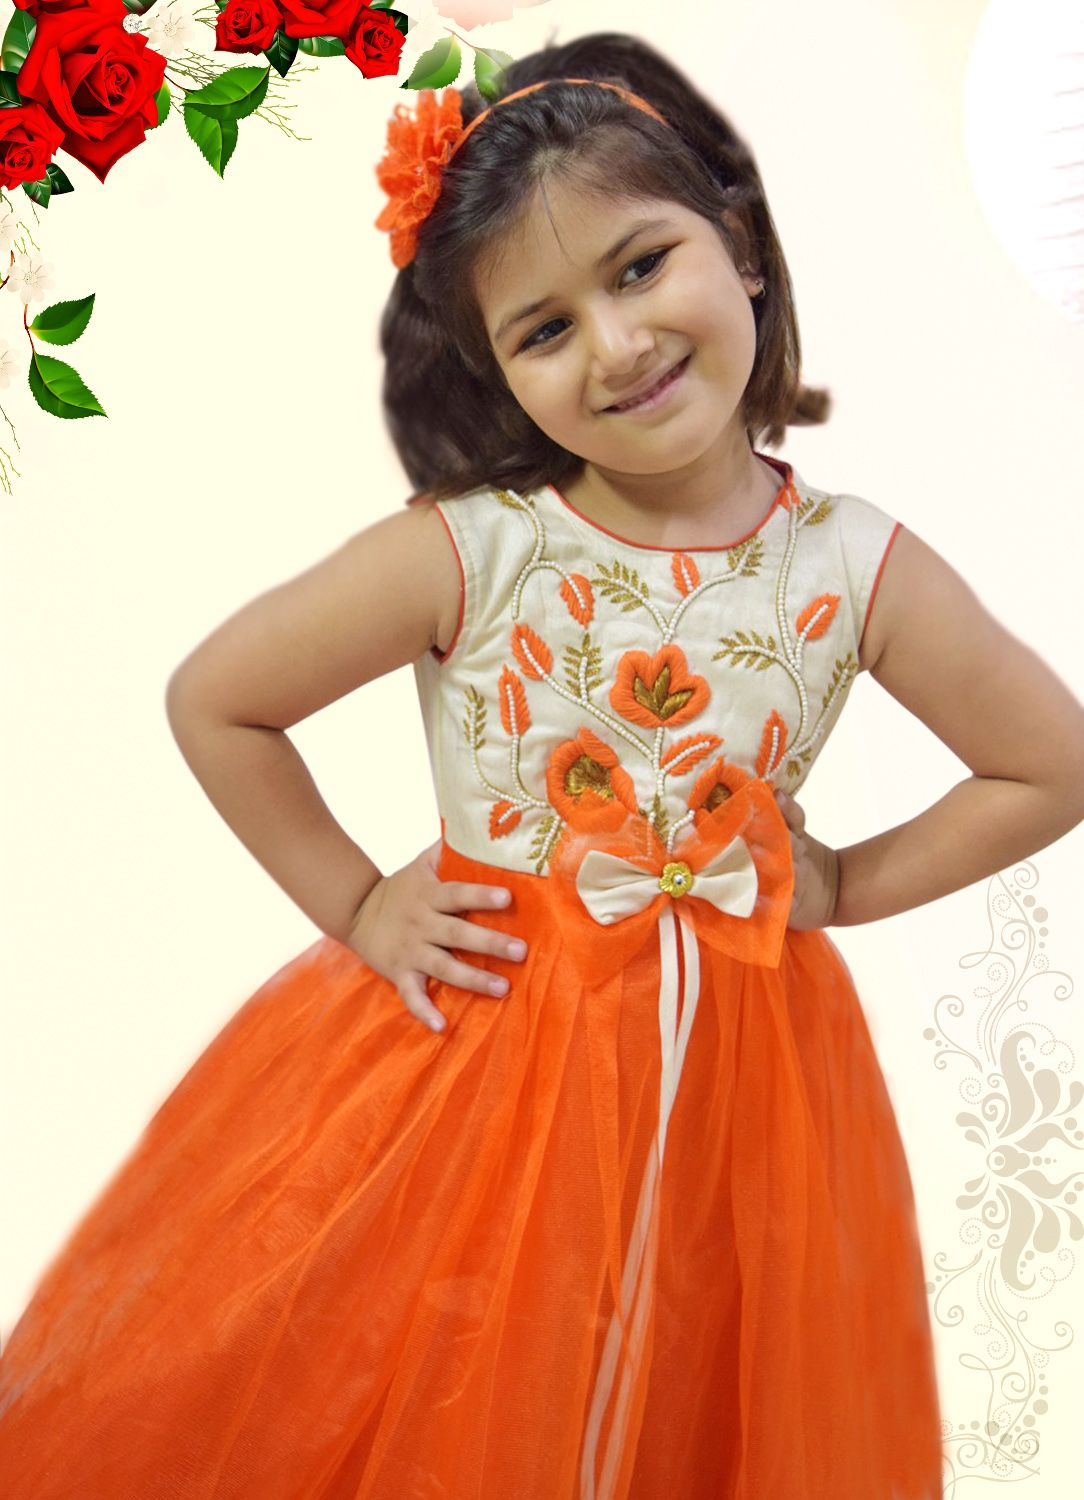 baby dresses for wedding Buy online in India the beautiful orange color party dress for baby girl in India